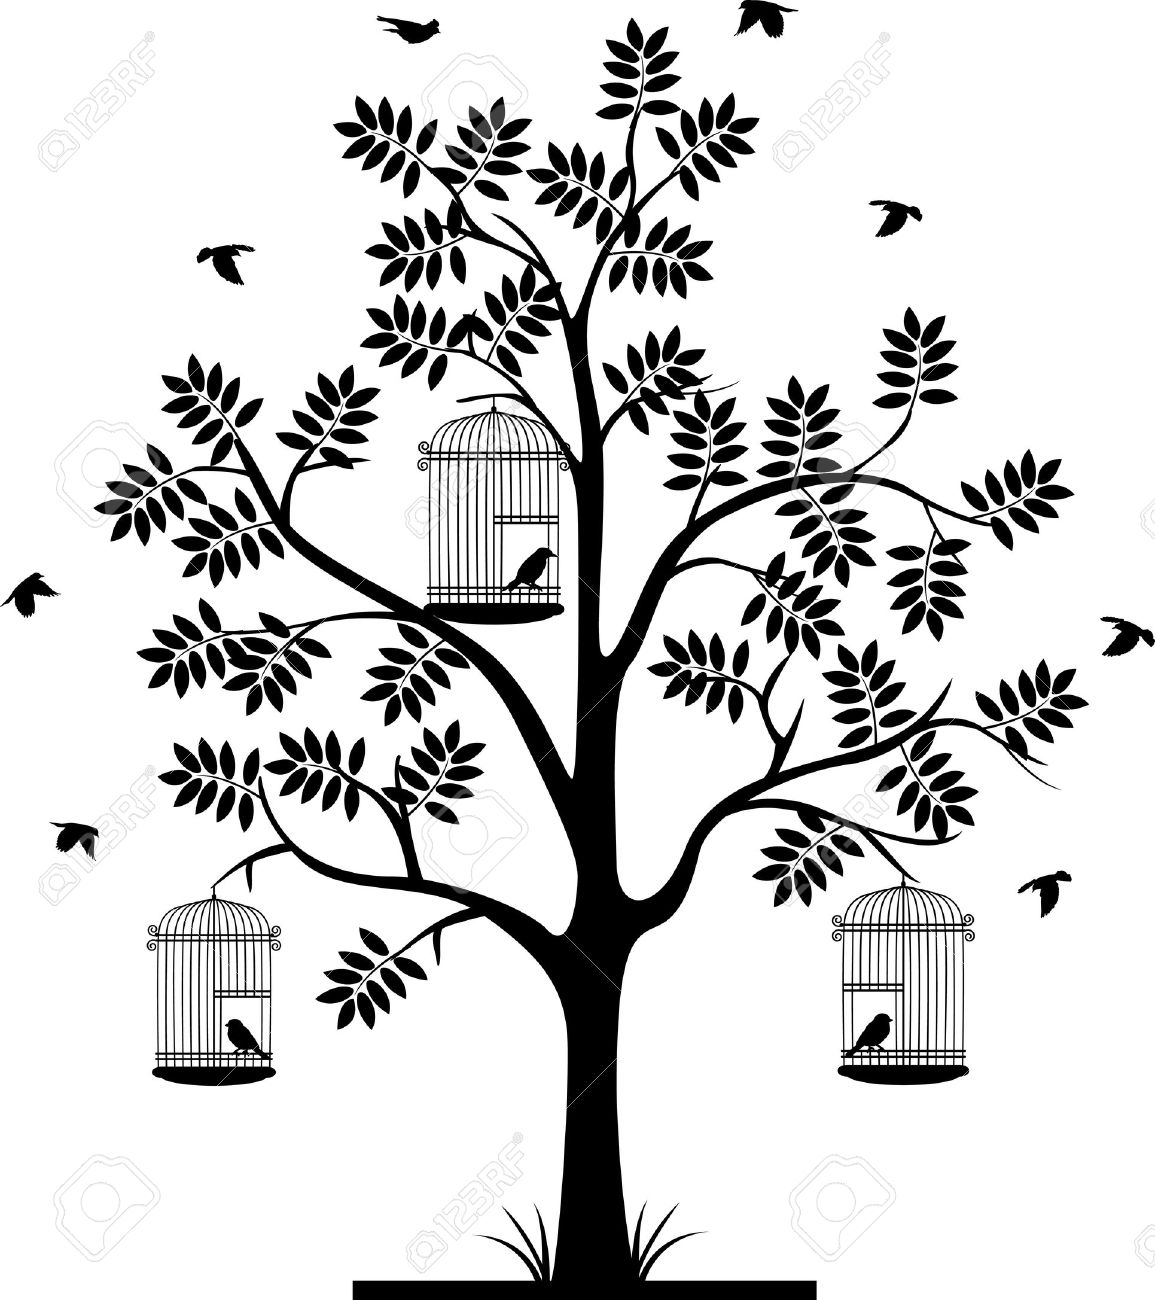 Flying Birds Silhouette Tree Bird Cages Tree Silhouette